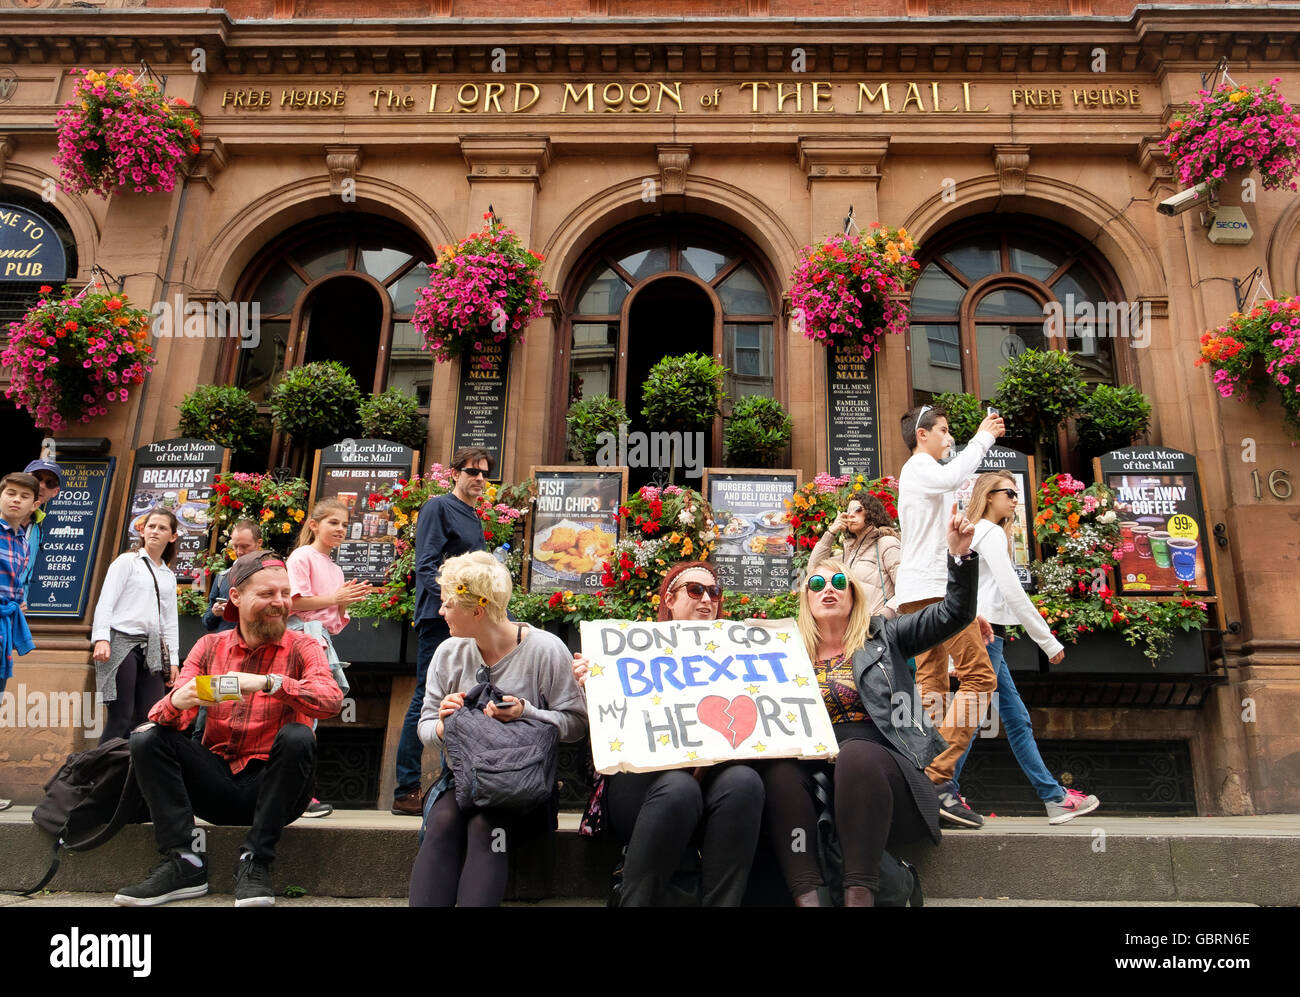 London, UK , 2 July 2016: Protesters on the March for Europe demonstration outside a Wetherspoons pub on The Mall - Stock Image